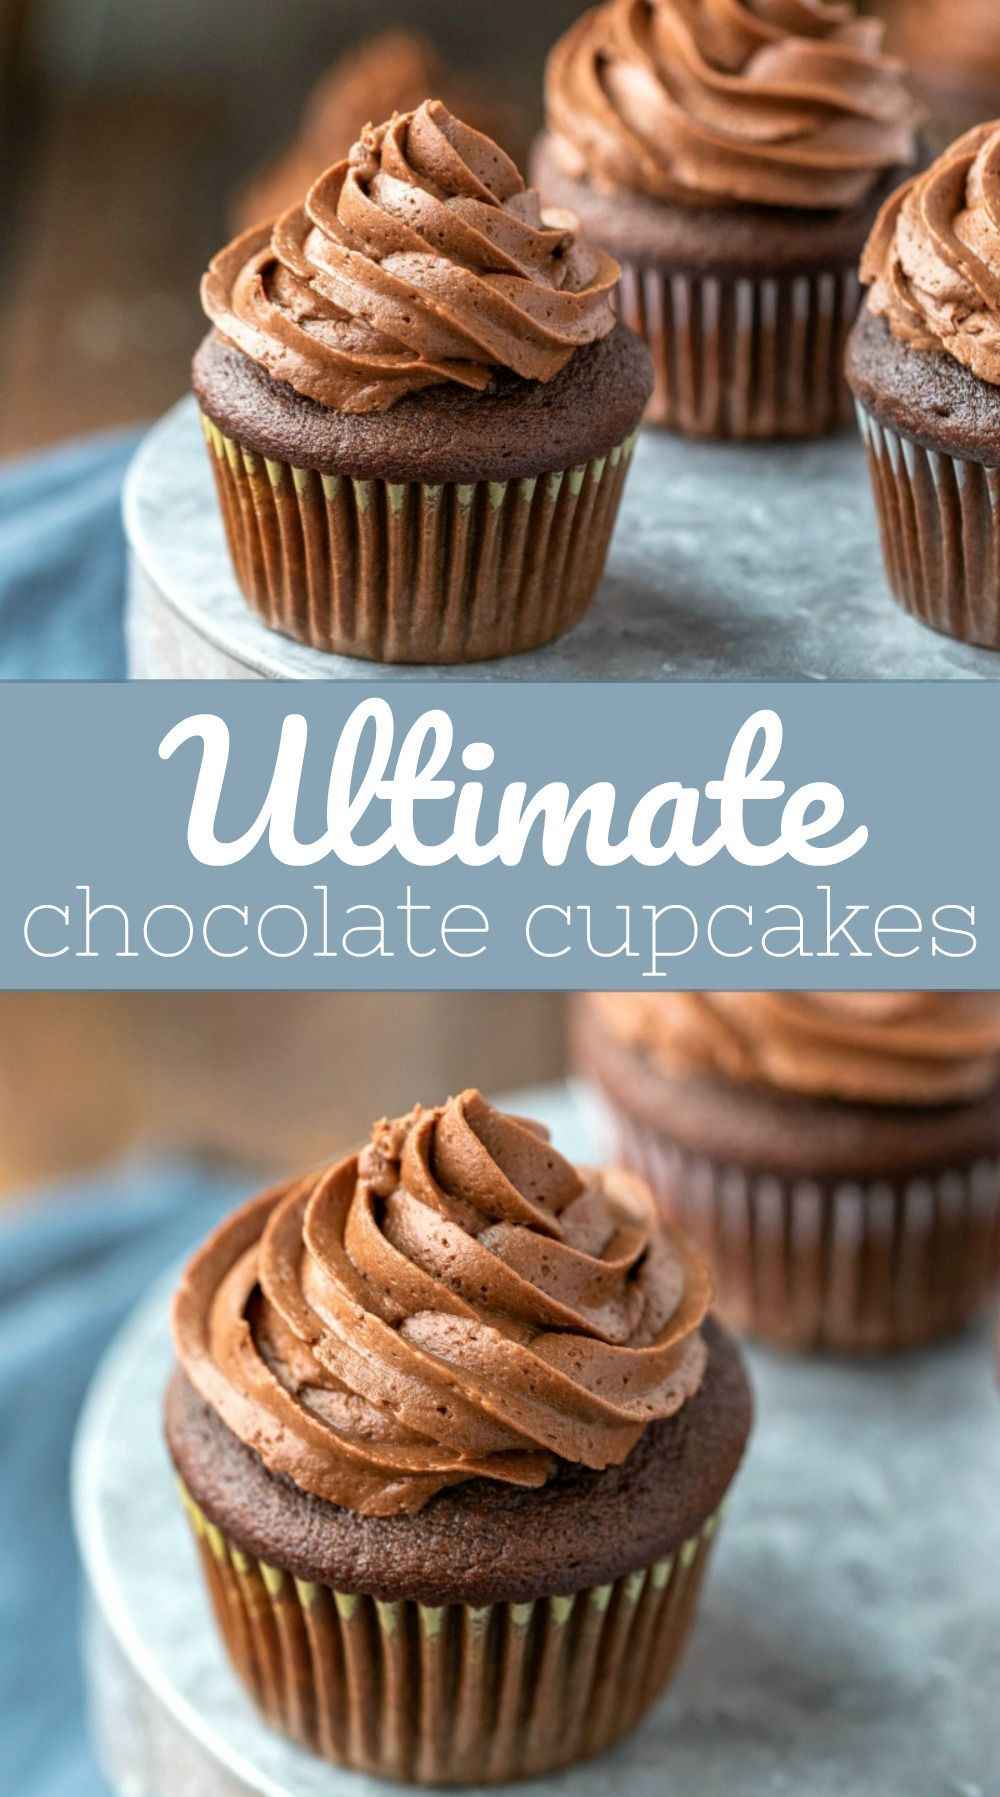 Easy Chocolate Cupcakes I Heart Eating Recipe Cupcake Recipes Chocolate Chocolate Cupcakes Easy Cupcake Recipes